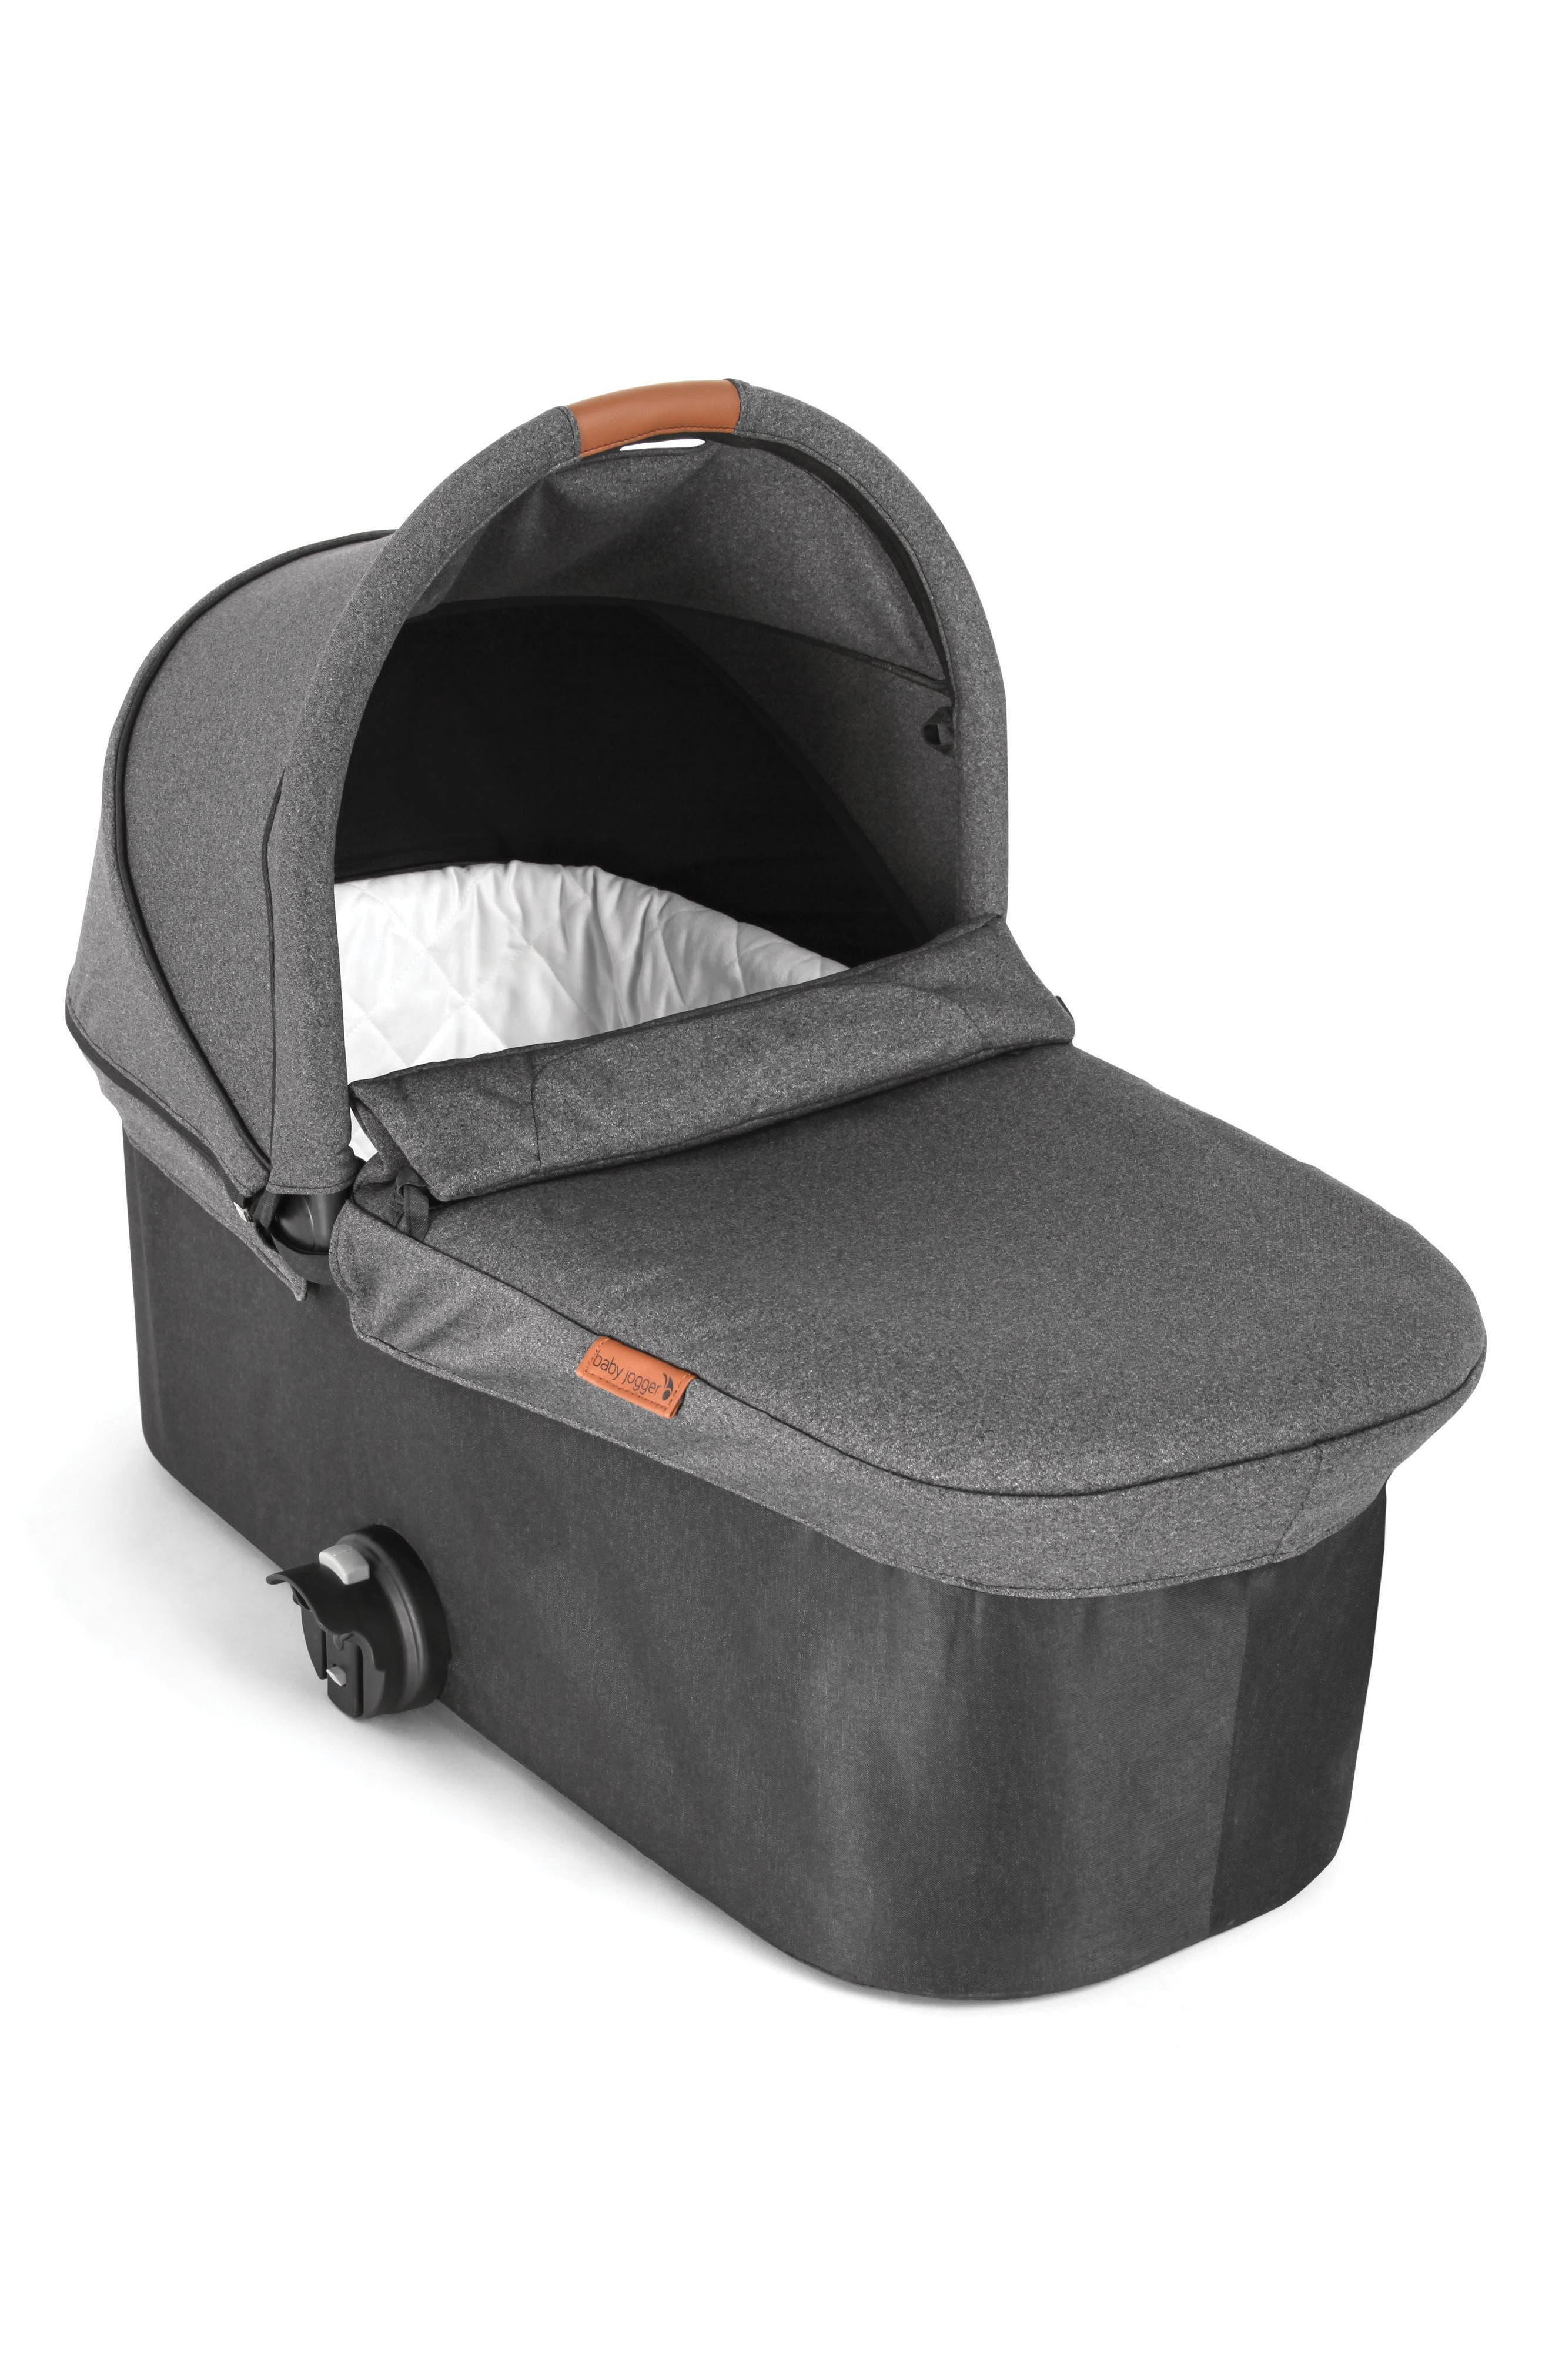 Deluxe Pram Converter Kit for City Mini<sup>®</sup> 2018 Special Edition 10-Year Anniversary All-Terrain Stroller,                             Main thumbnail 1, color,                             Grey